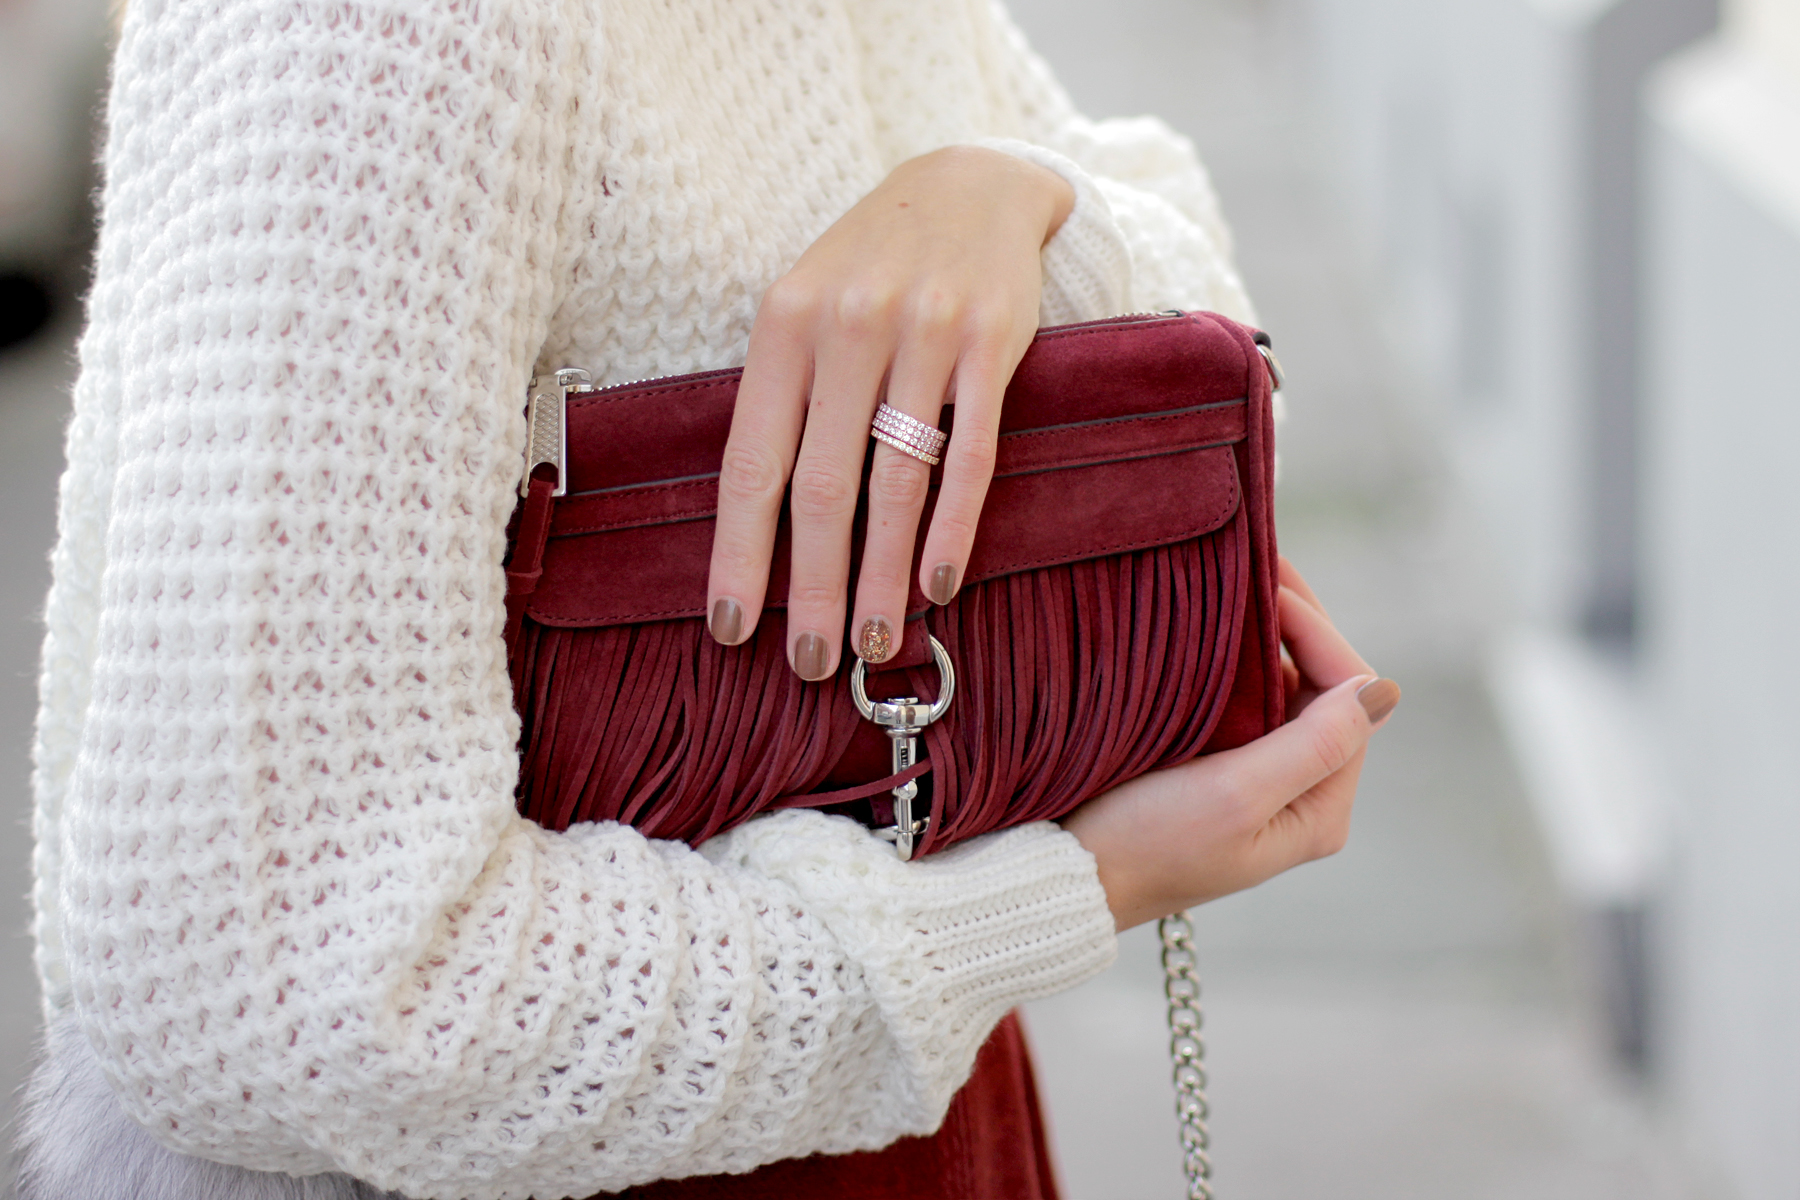 edited the label red burgundy a line skirt seventies soft white knit rebecca minkoff wine bag cross body cats & dogs fashionblogger ricarda schernus blog berlin hannover düsseldorf 4